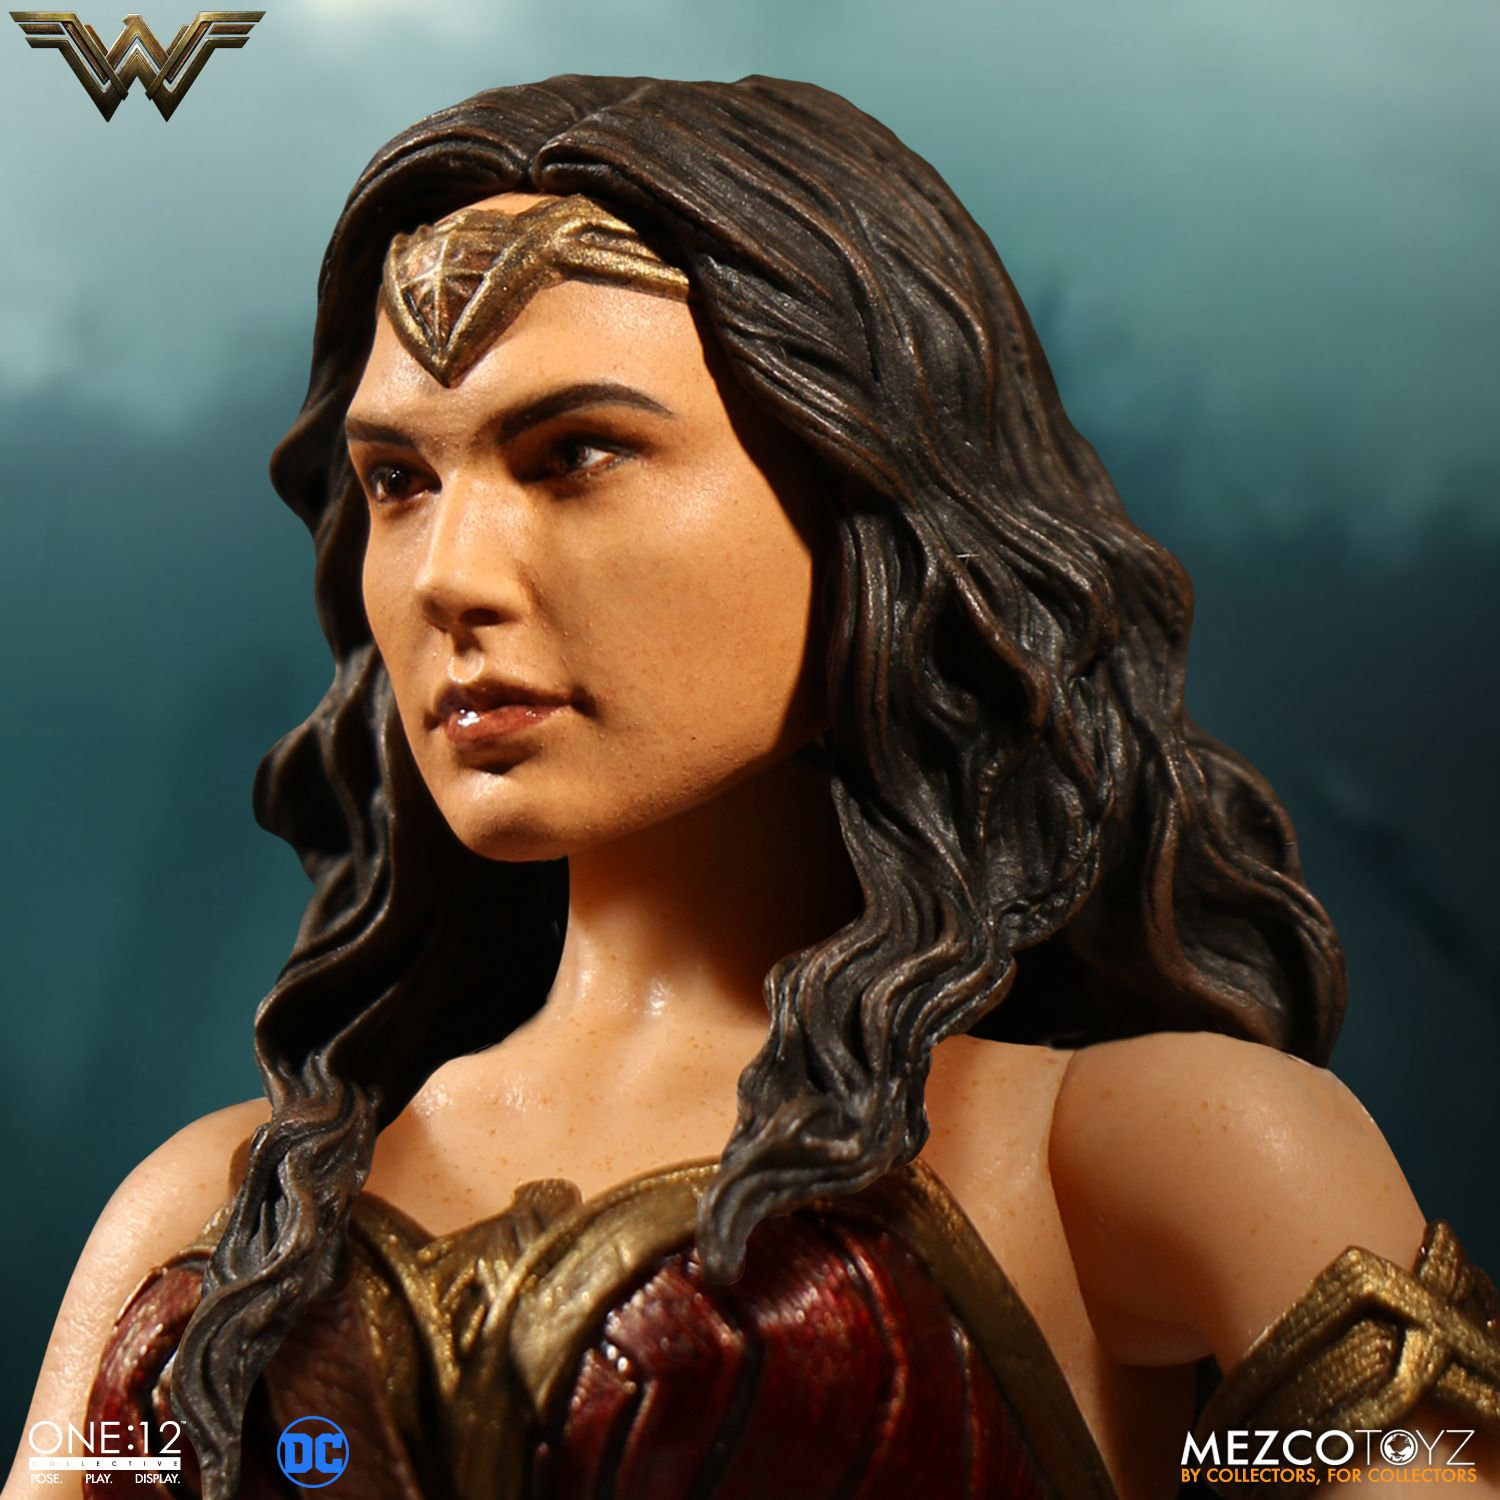 Wonder-Woman-One12-Mezco-007